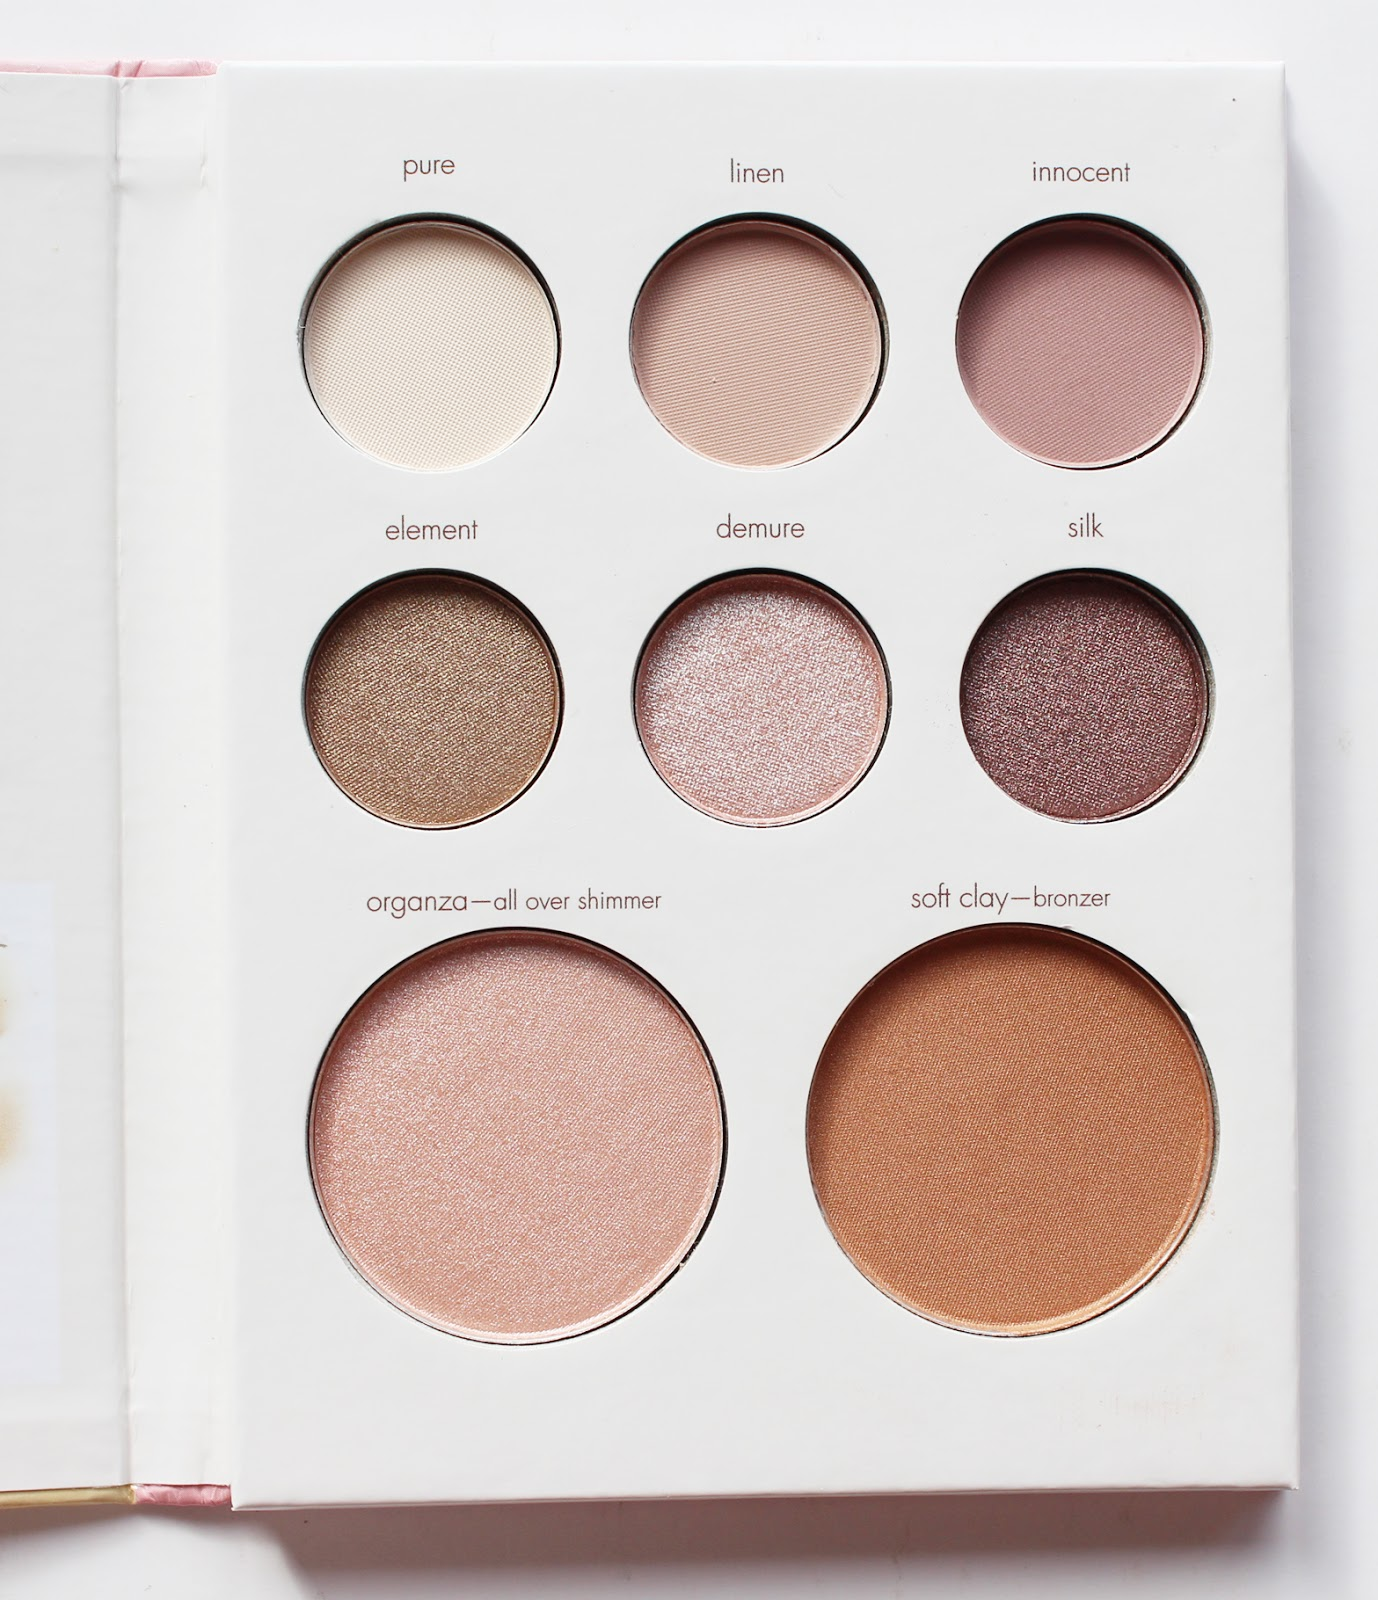 STILA | The Natural Collectible Palette - Review + Swatches - CassandraMyee